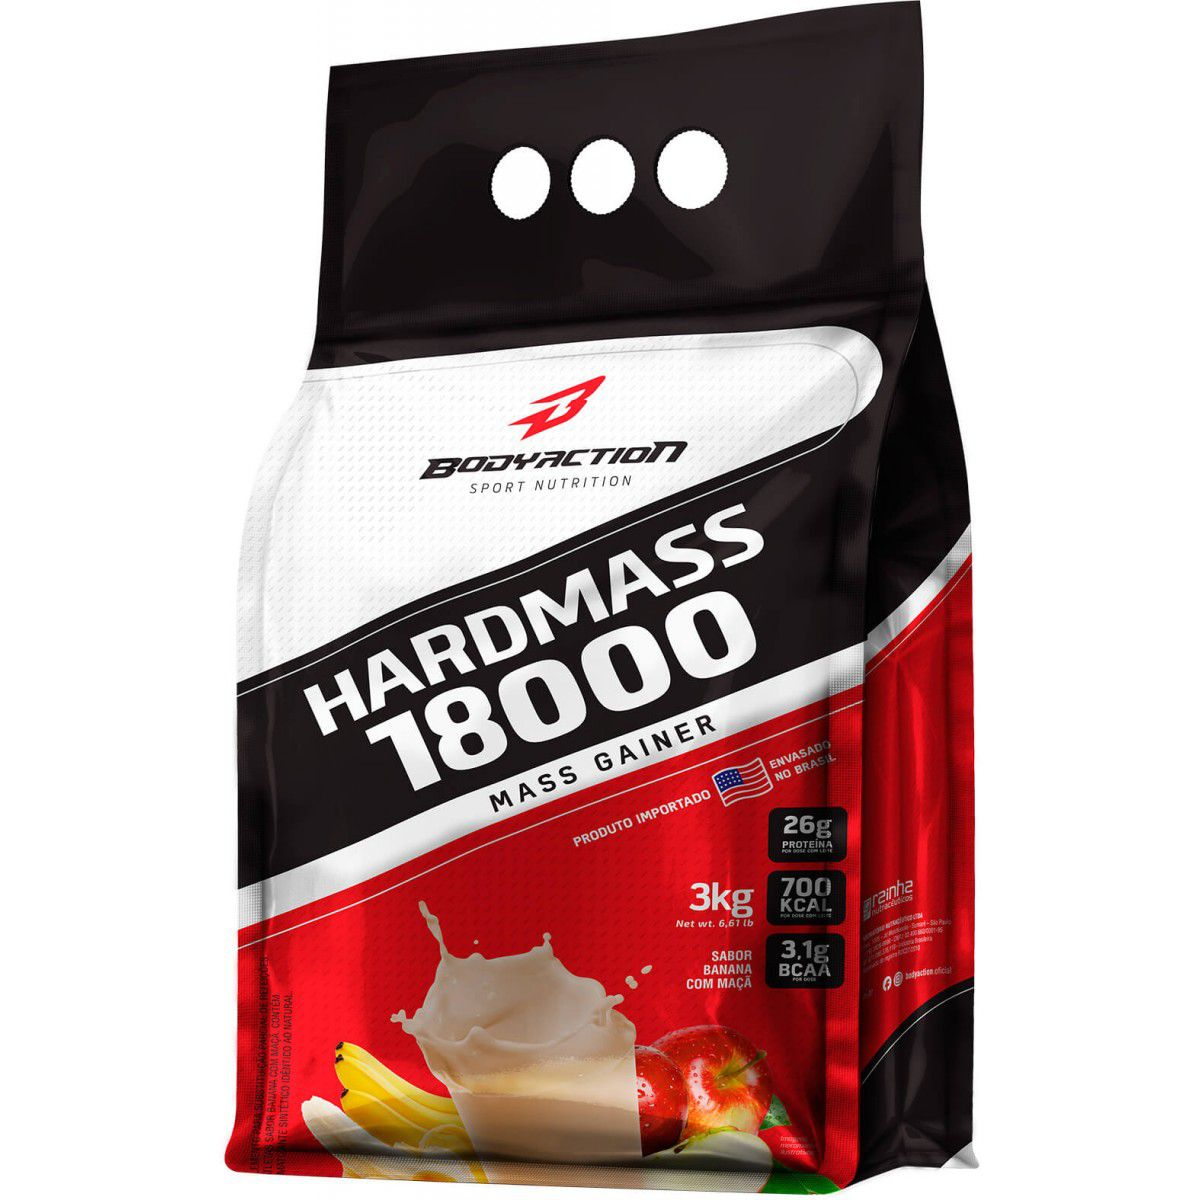 Hard Mass 18000 Mass Gainer 3kg Body Action  - Vitta Gold